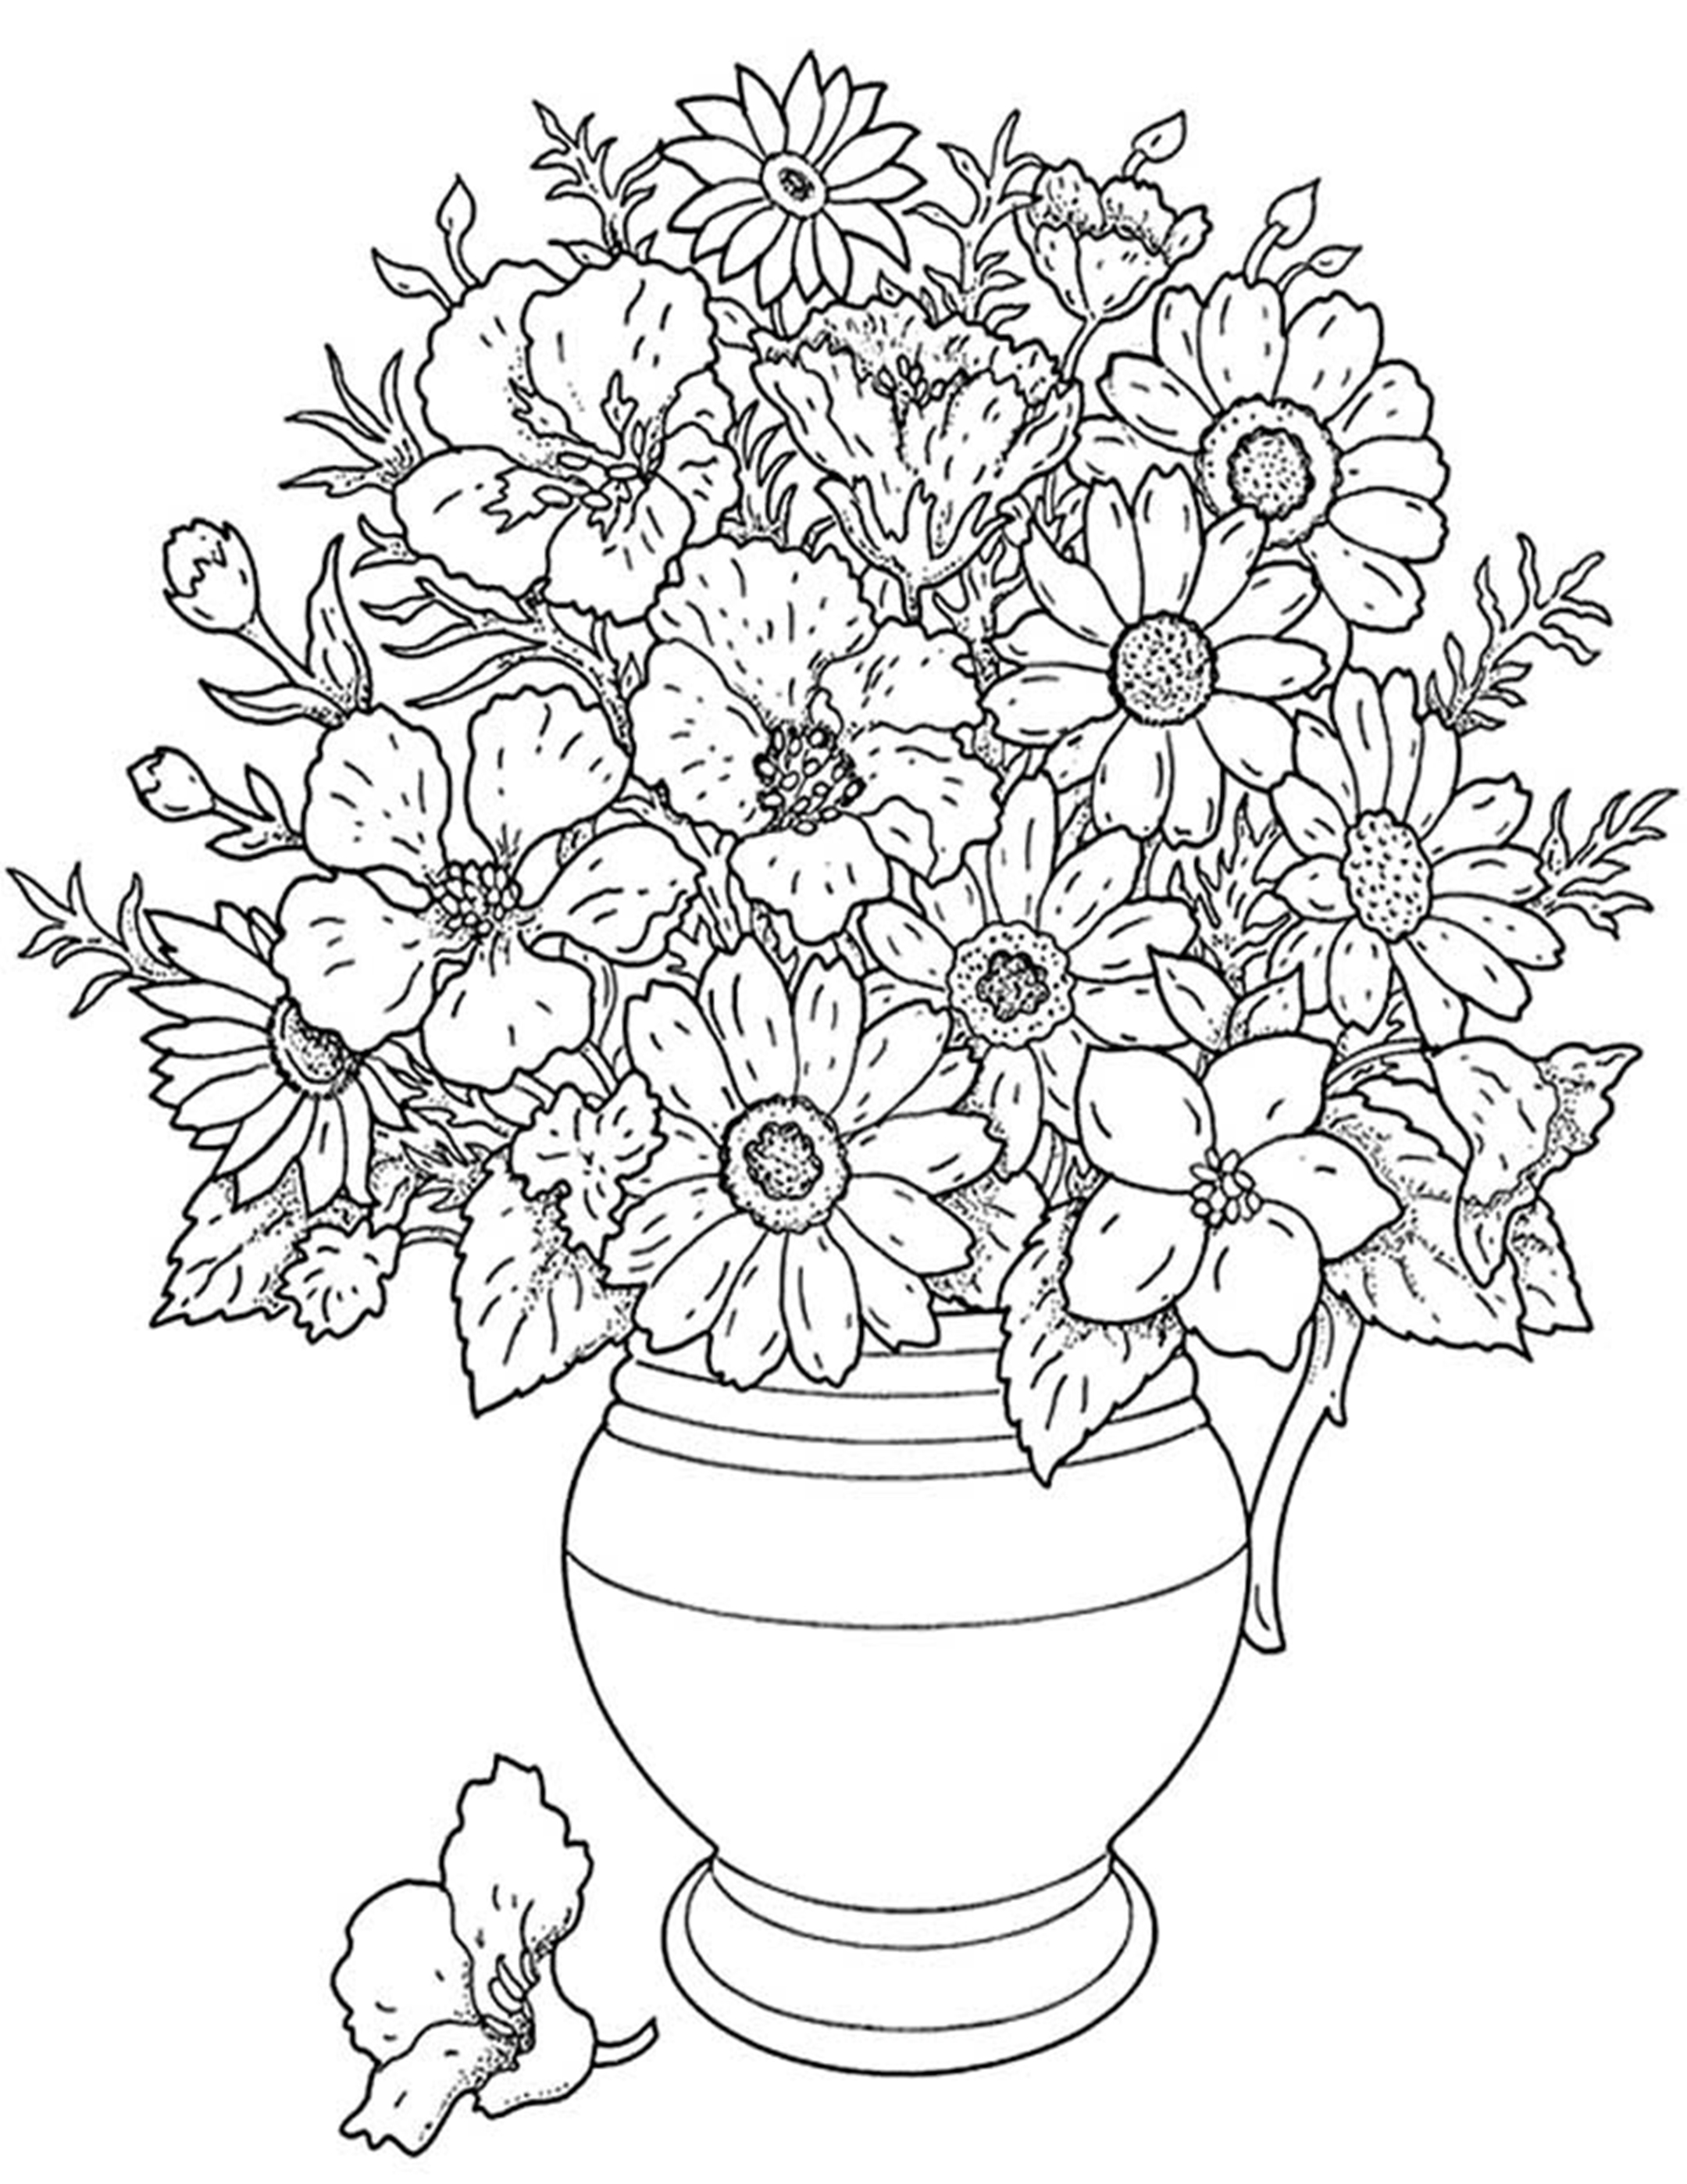 coloring pages flowers free printable flower coloring pages for kids best pages coloring flowers